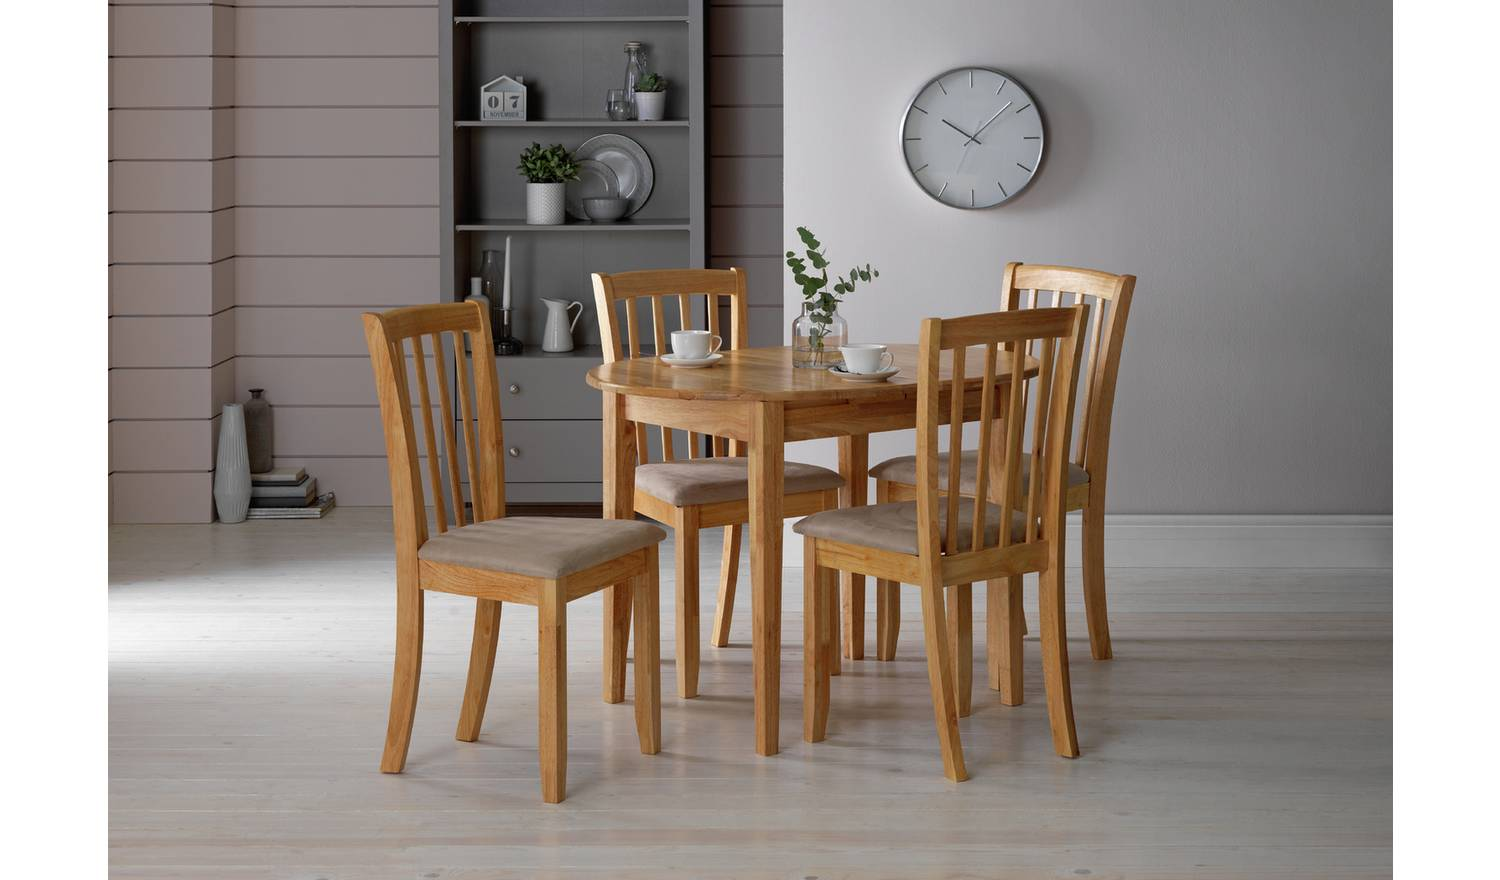 Banbury extendable table with chairs – Argos Home